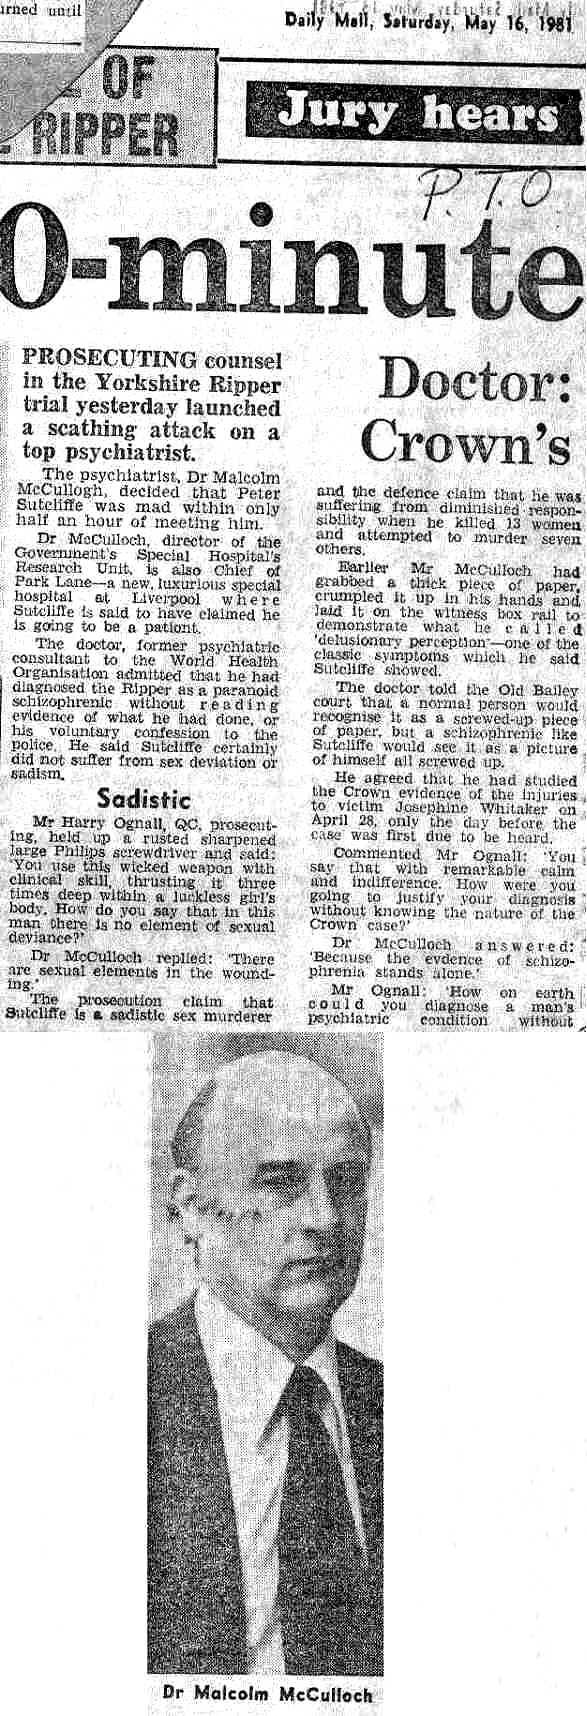 Yorkshire Ripper article